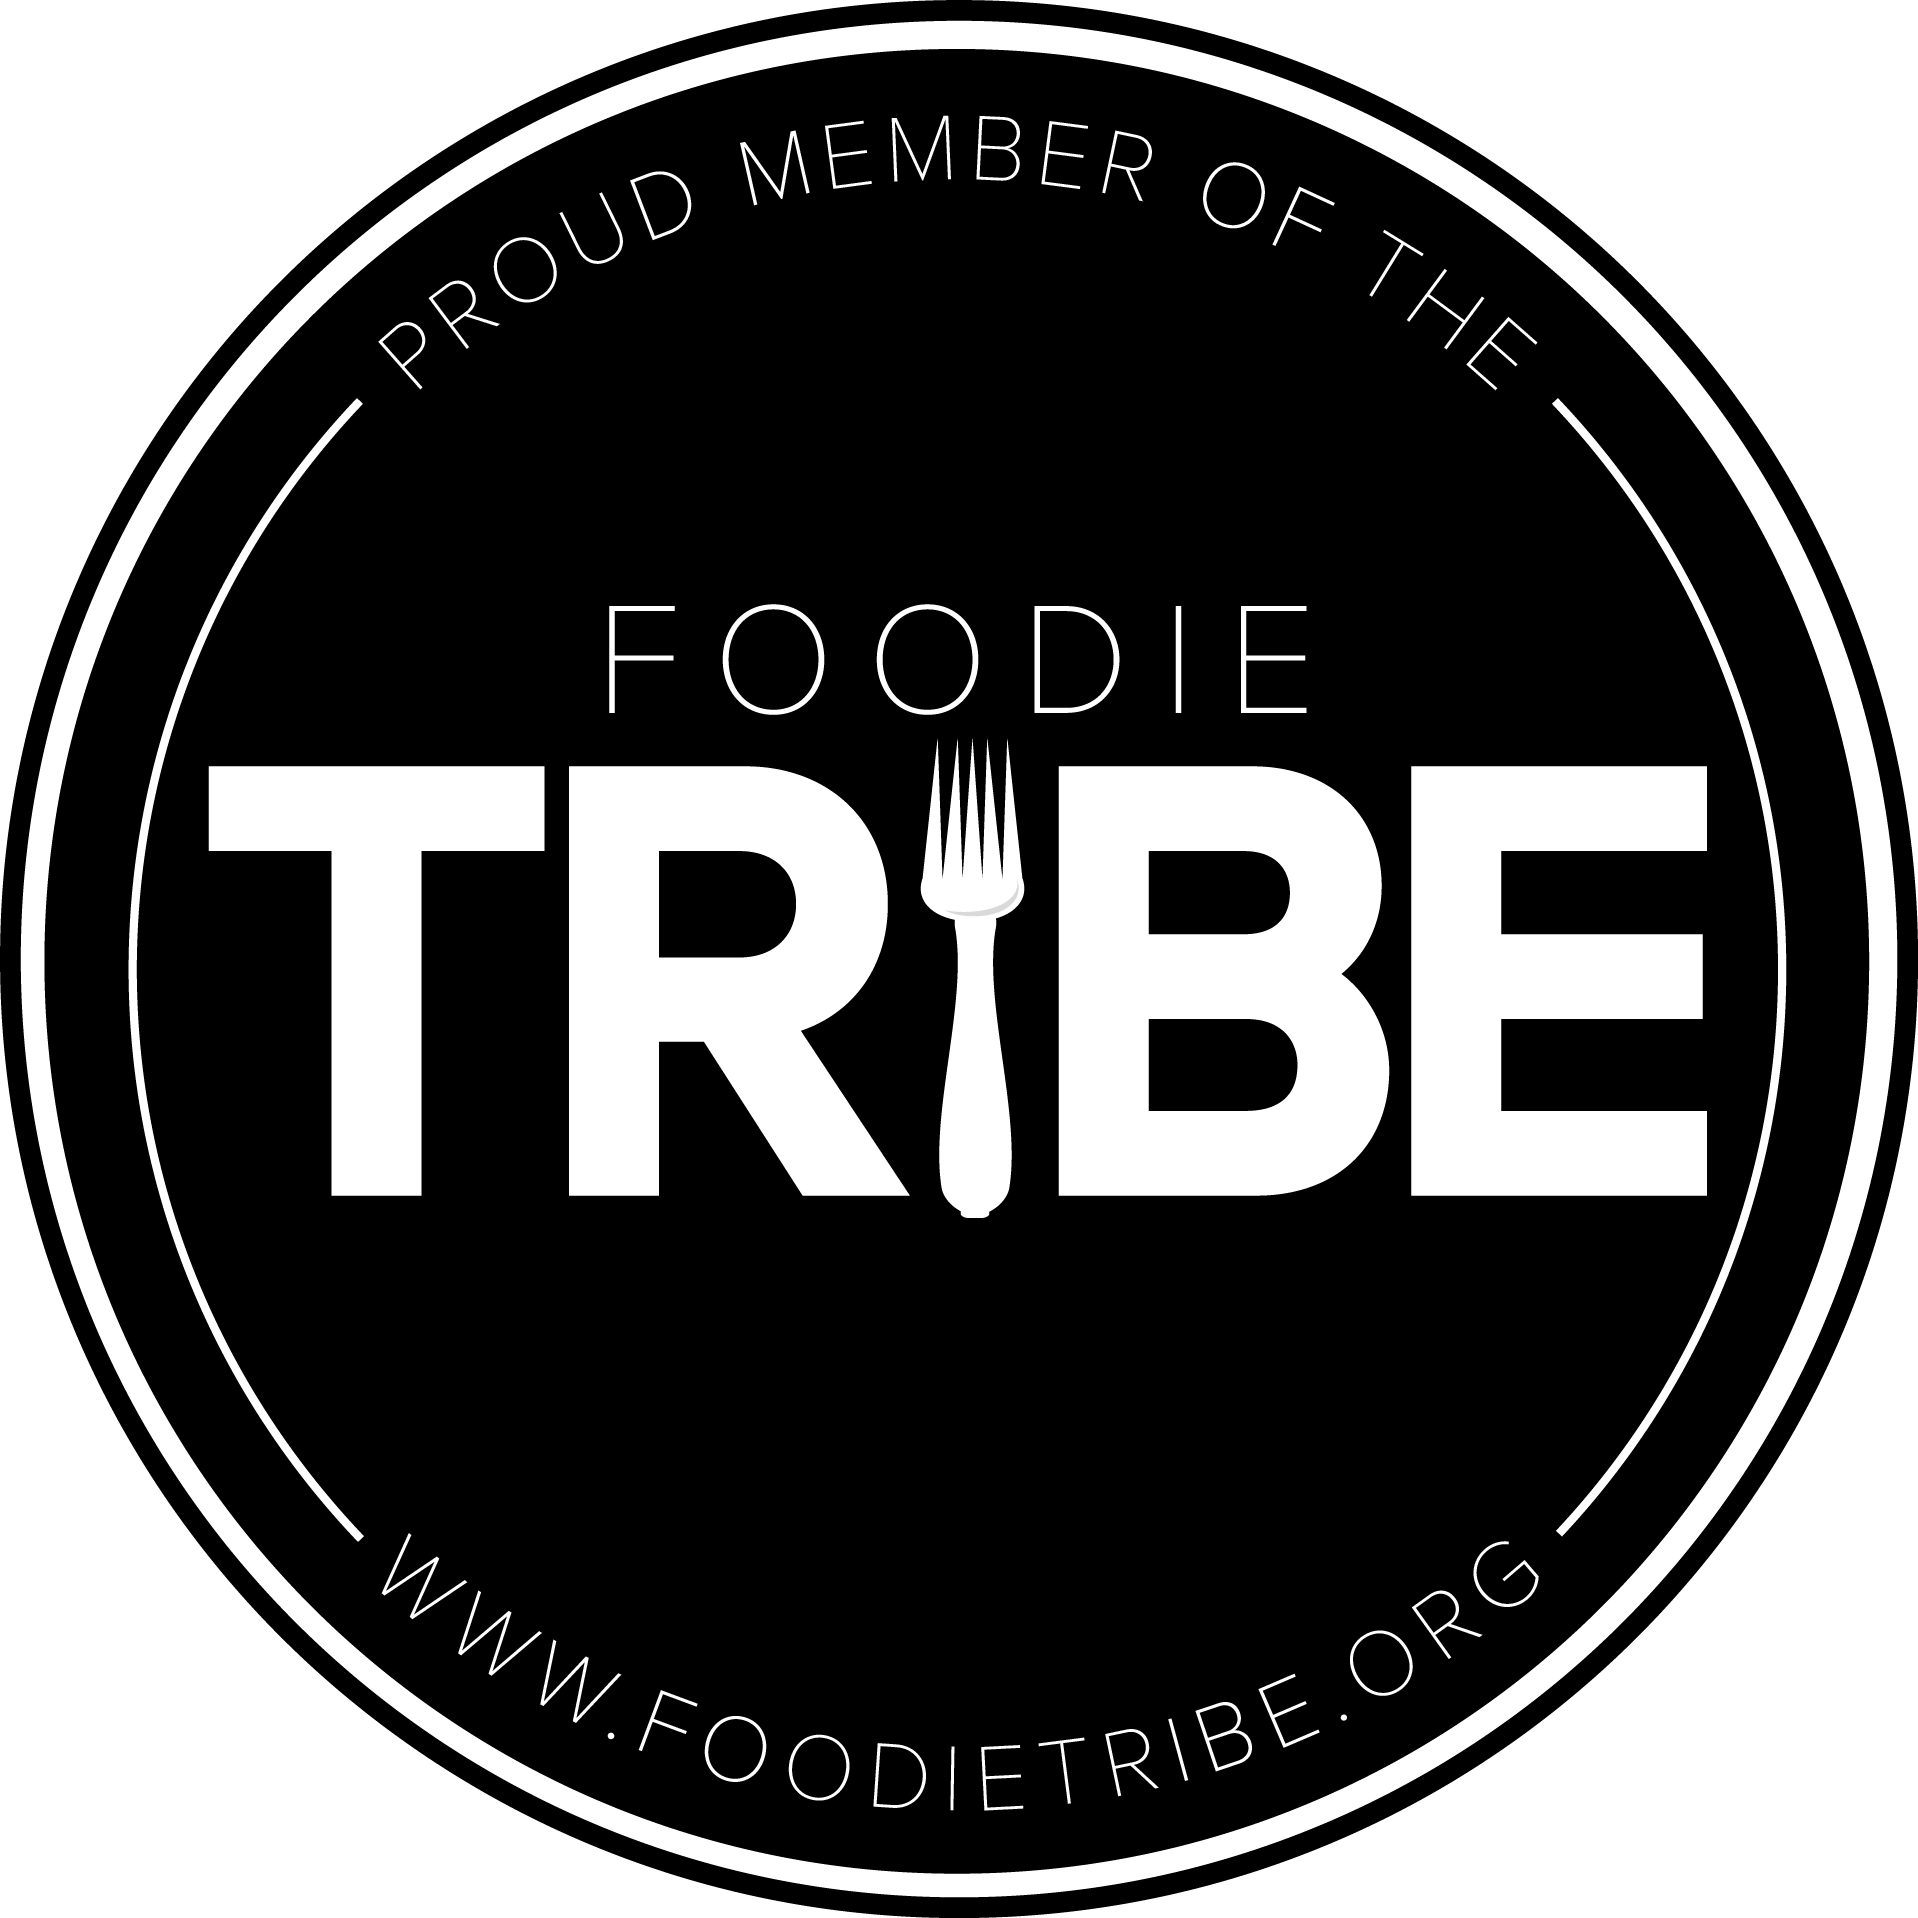 Foodie Tribe, FoodieTribe, foodies, food, Foodie Influential Network